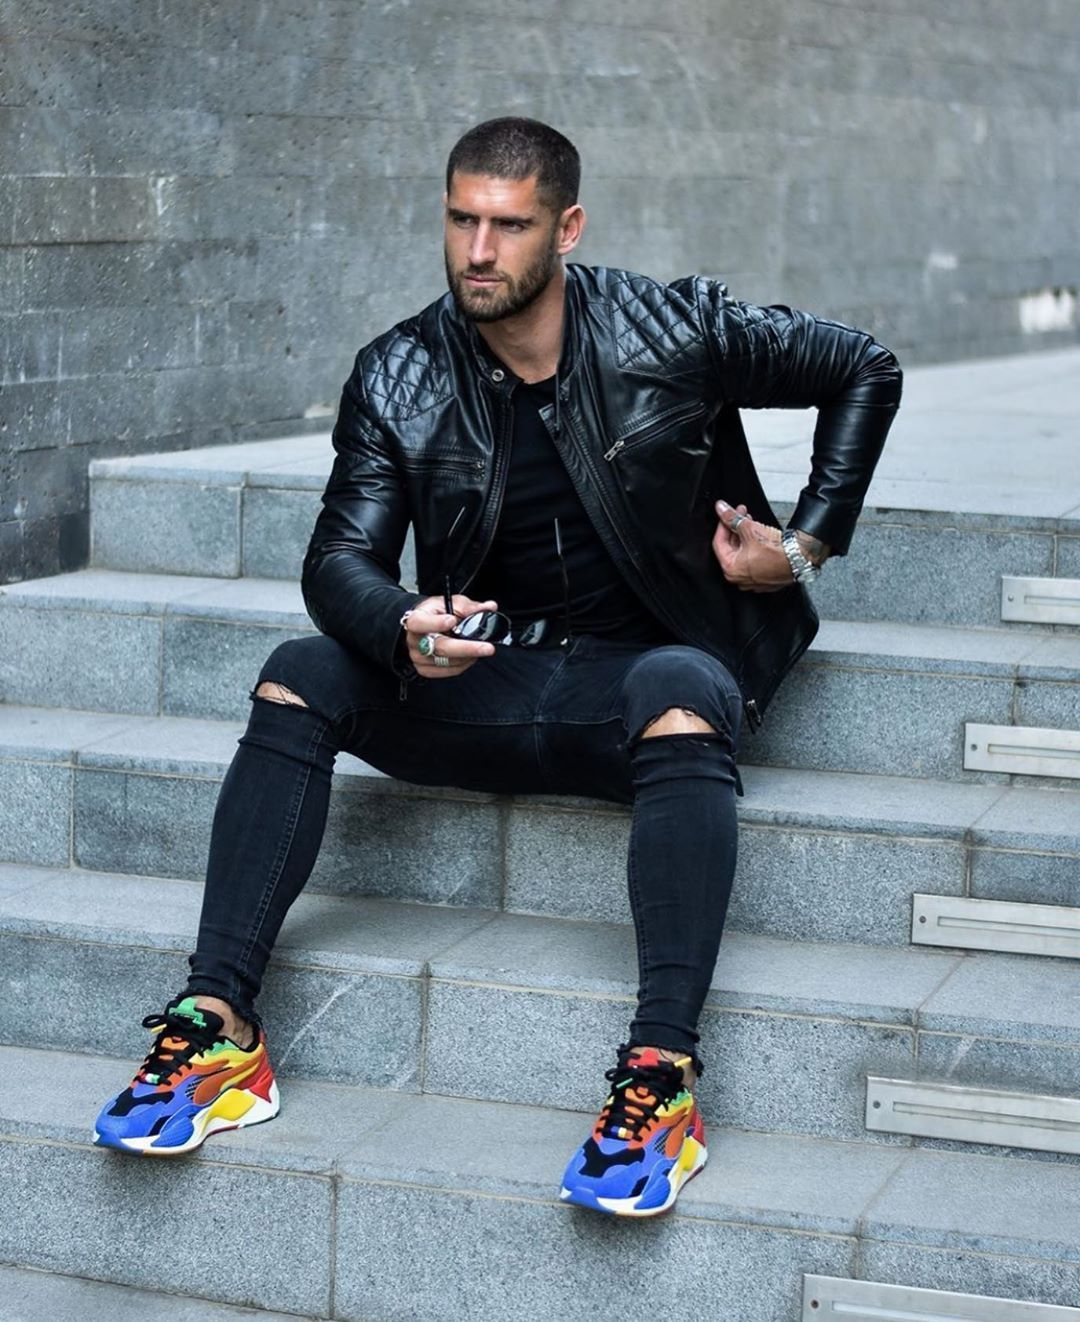 Visit Our Website For The Latest Men S Fashion Trends Products And Tips Mensfashion Mensa In 2020 Street Style Outfits Men Latest Mens Fashion Trends Mens Outfits